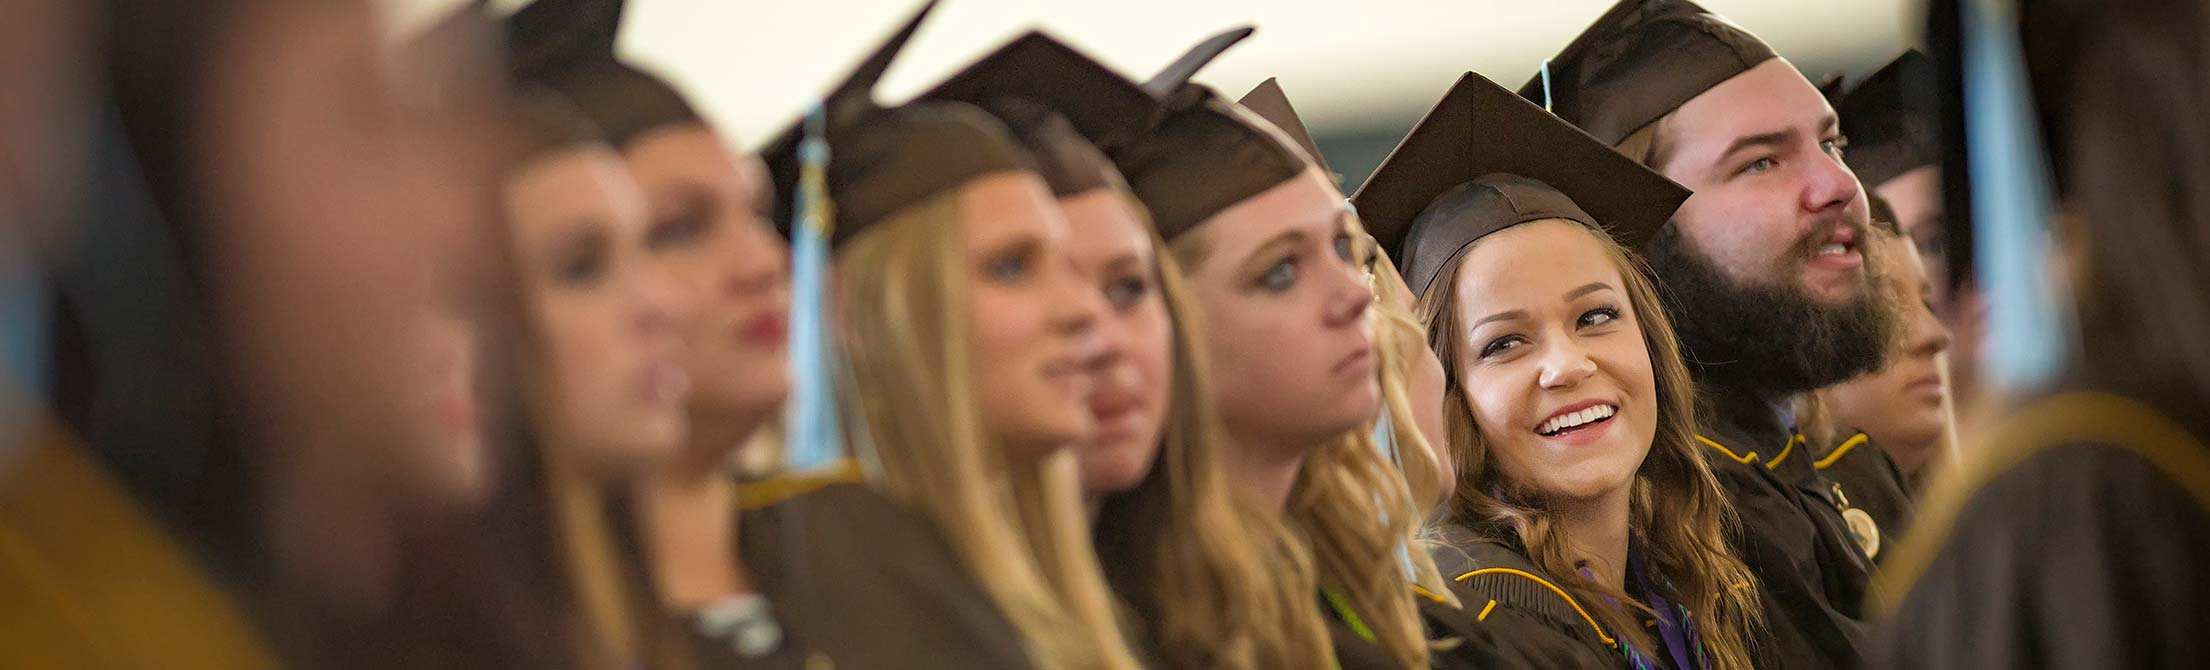 image of graduation faces